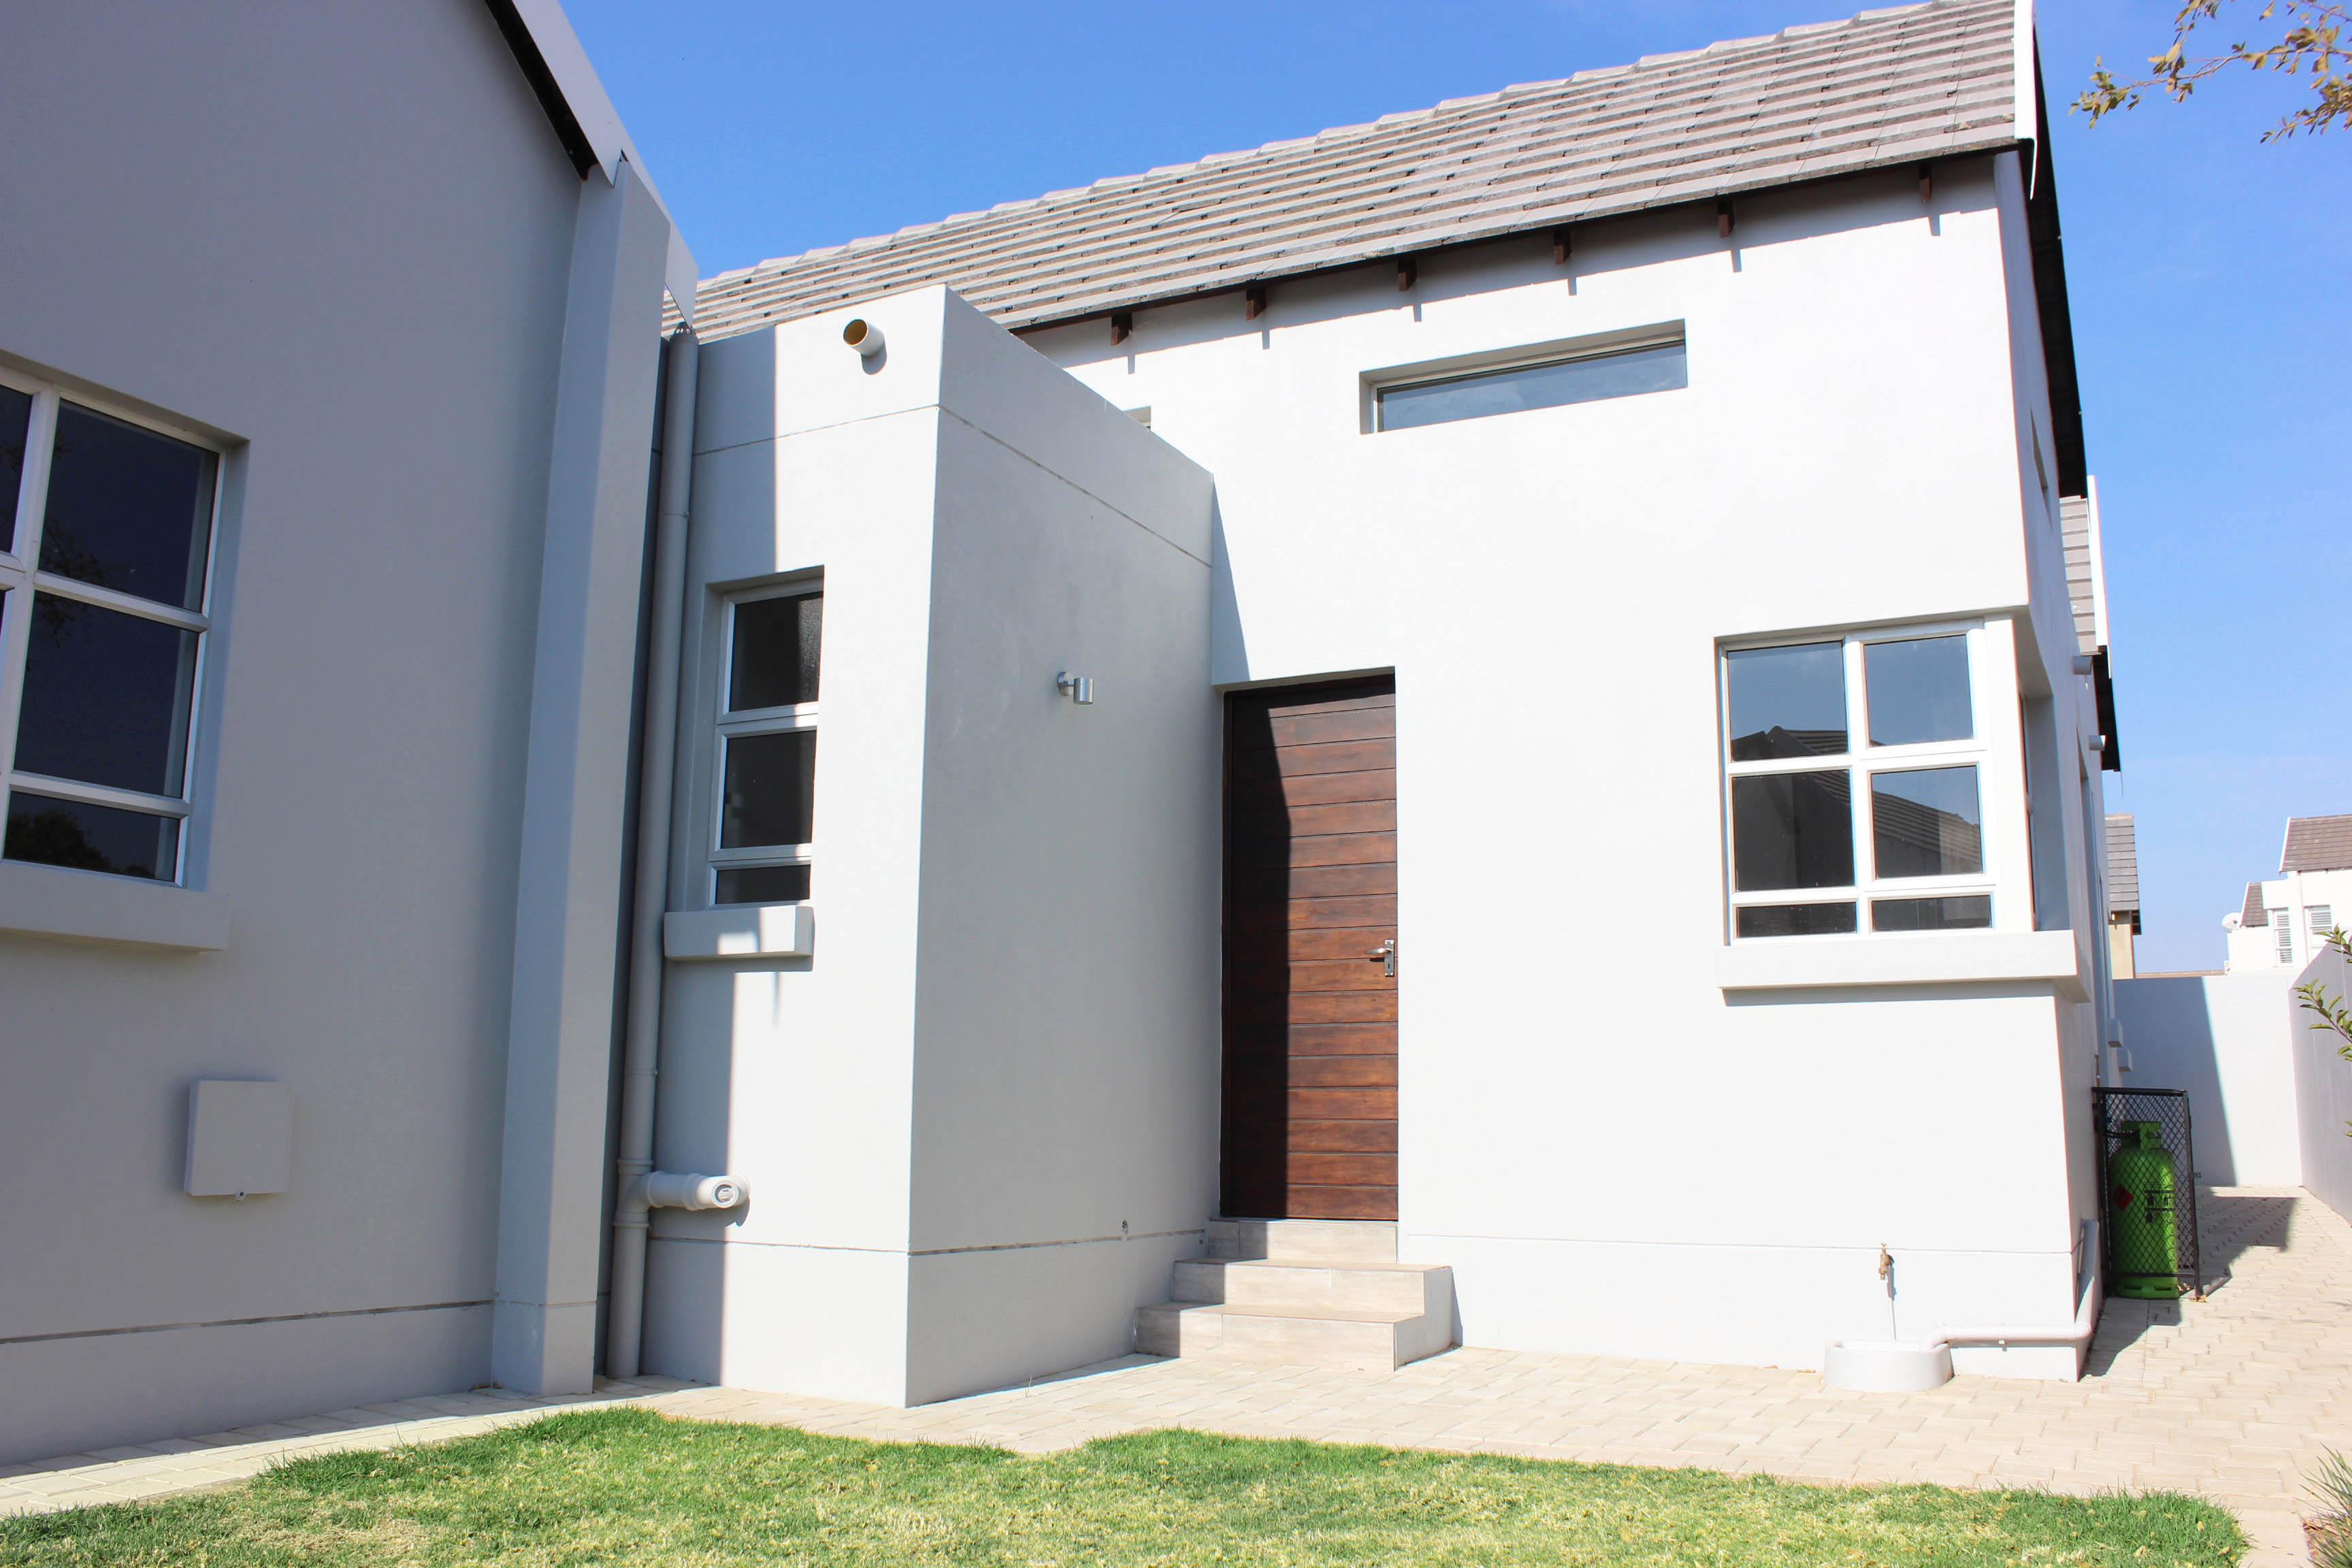 3 Bedroom Townhouse for sale in North Riding ENT0075308 : photo#2